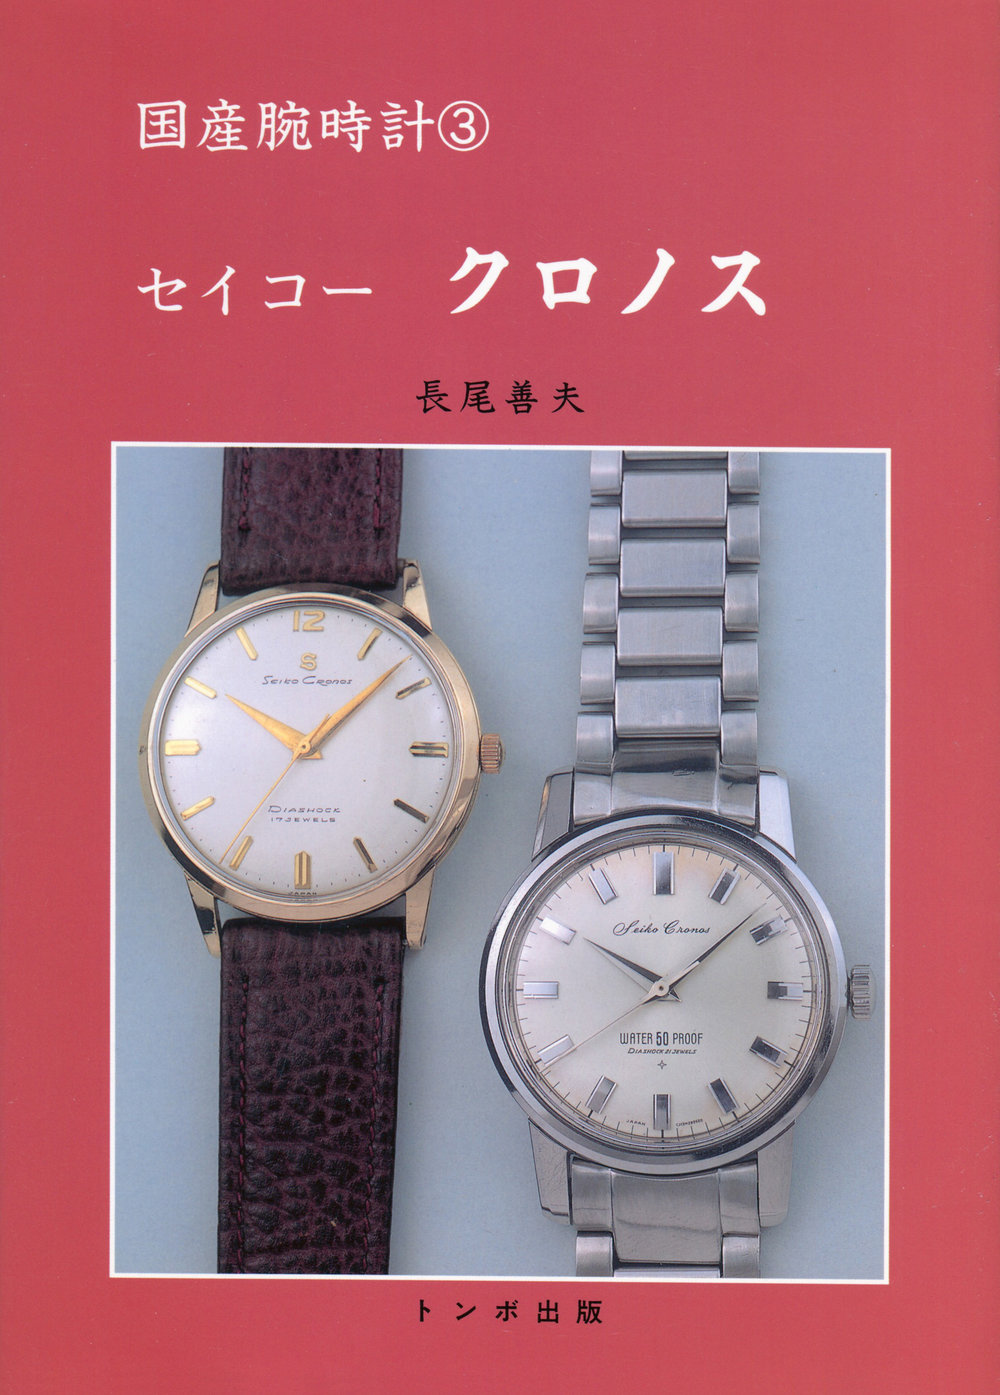 COVER - DOMESTIC WATCH VOLUME 3COVER - DOMESTIC WATCH VOLUME